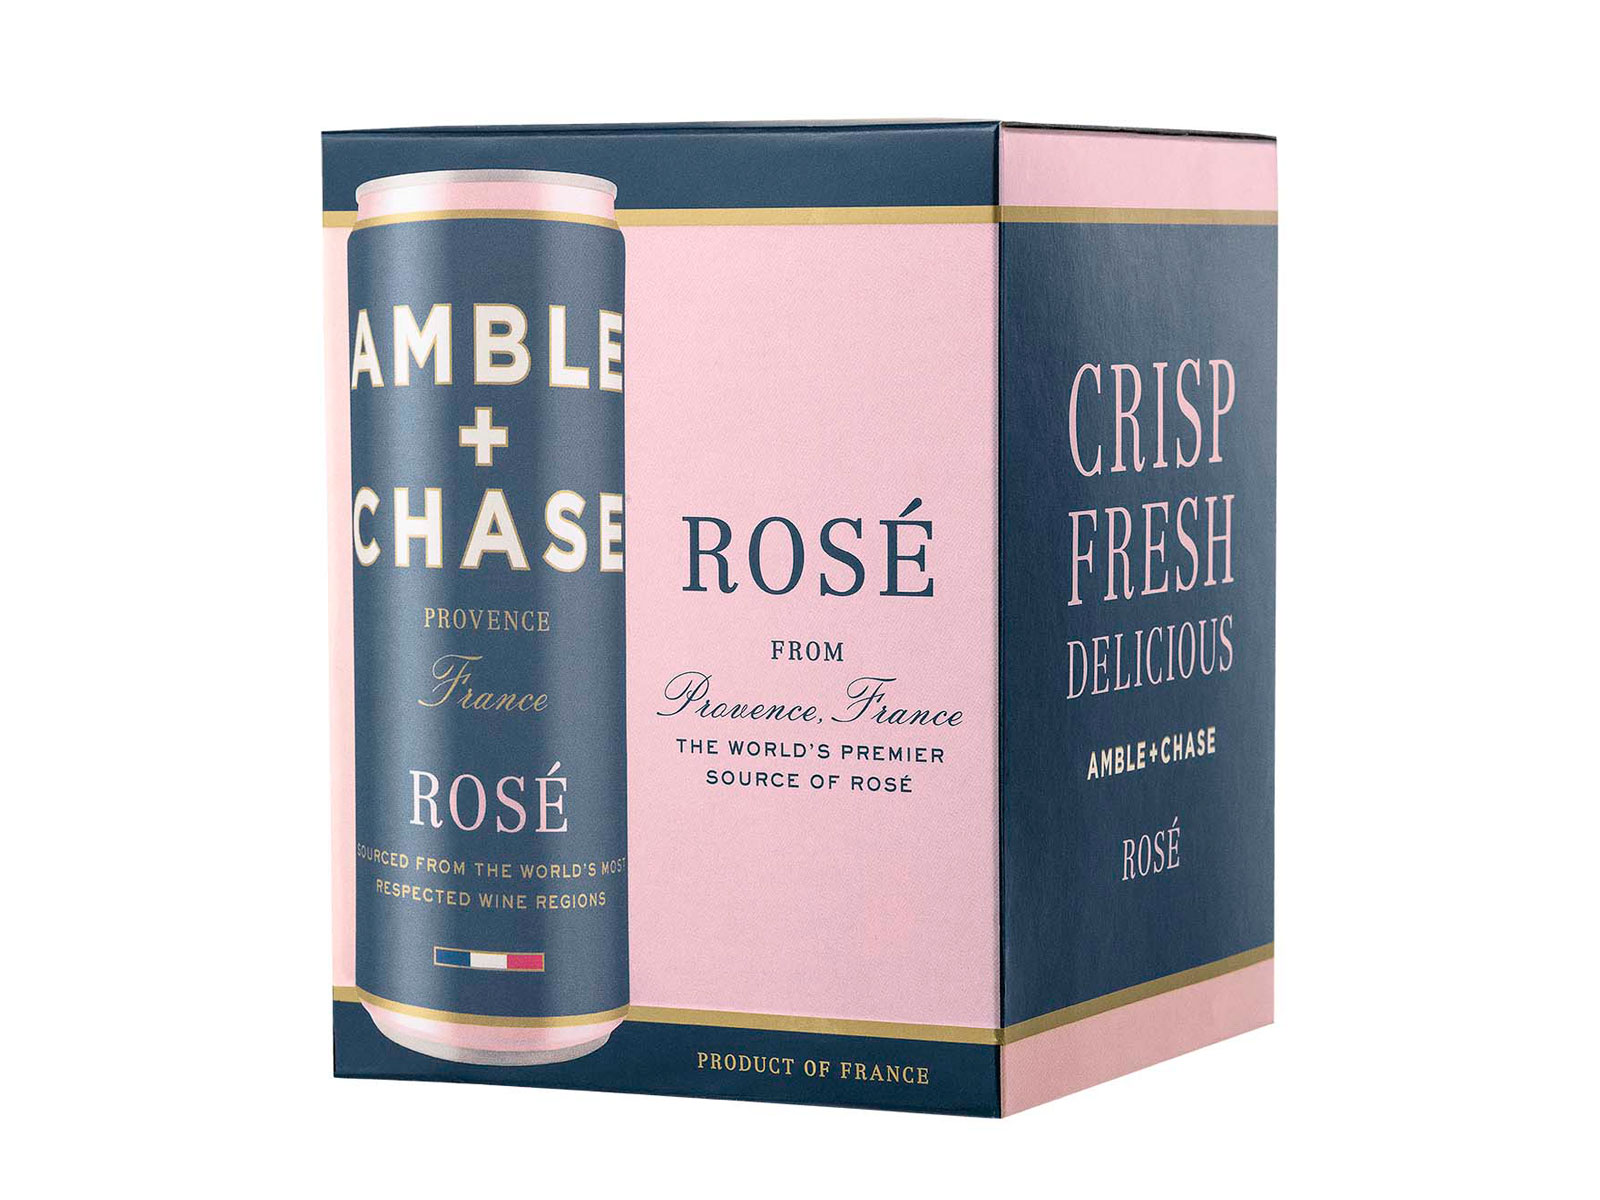 2017 Amble + Chase Rose